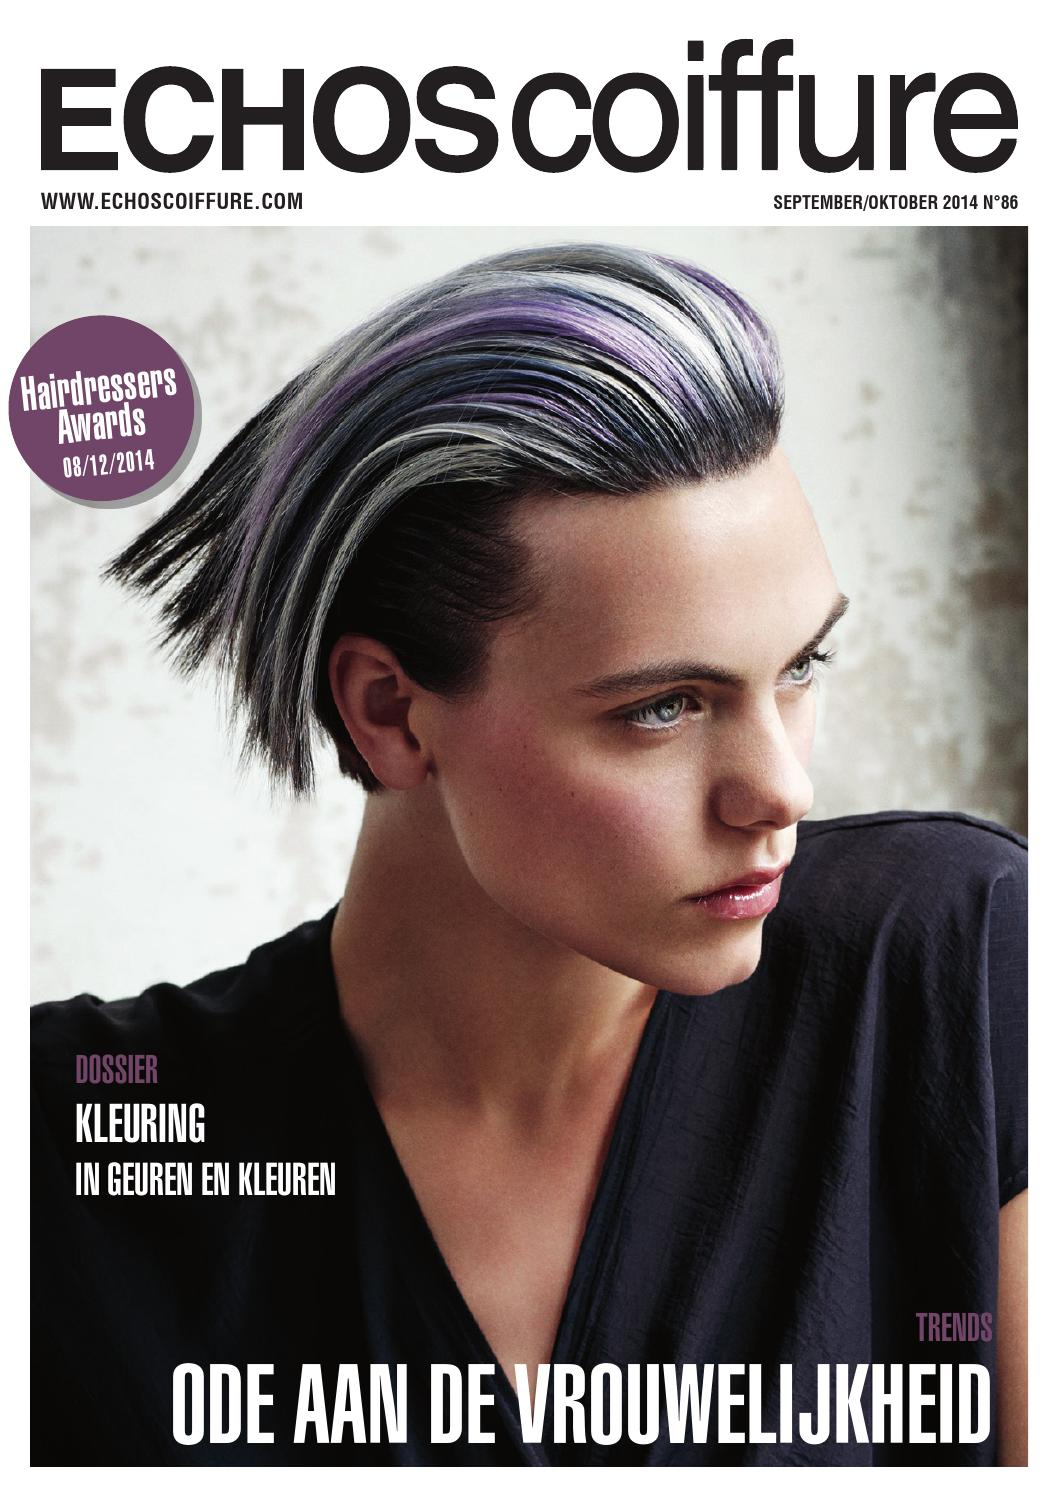 Echos Coiffure BE NL N°88 by Eurobest Products - issuu